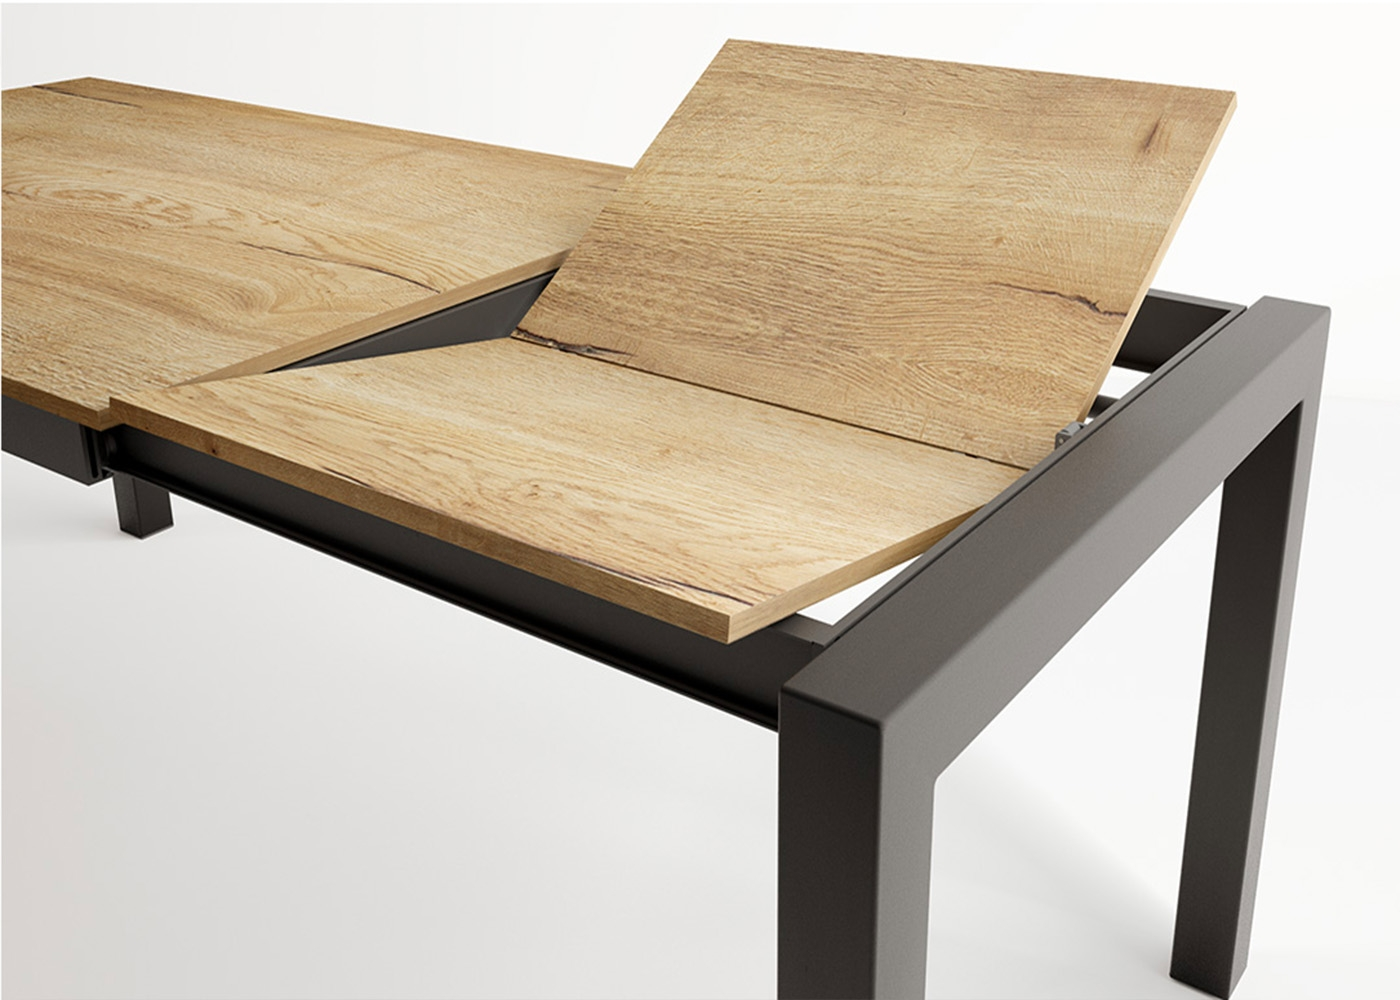 Table haute, table snack ou table bar design et de qualité en